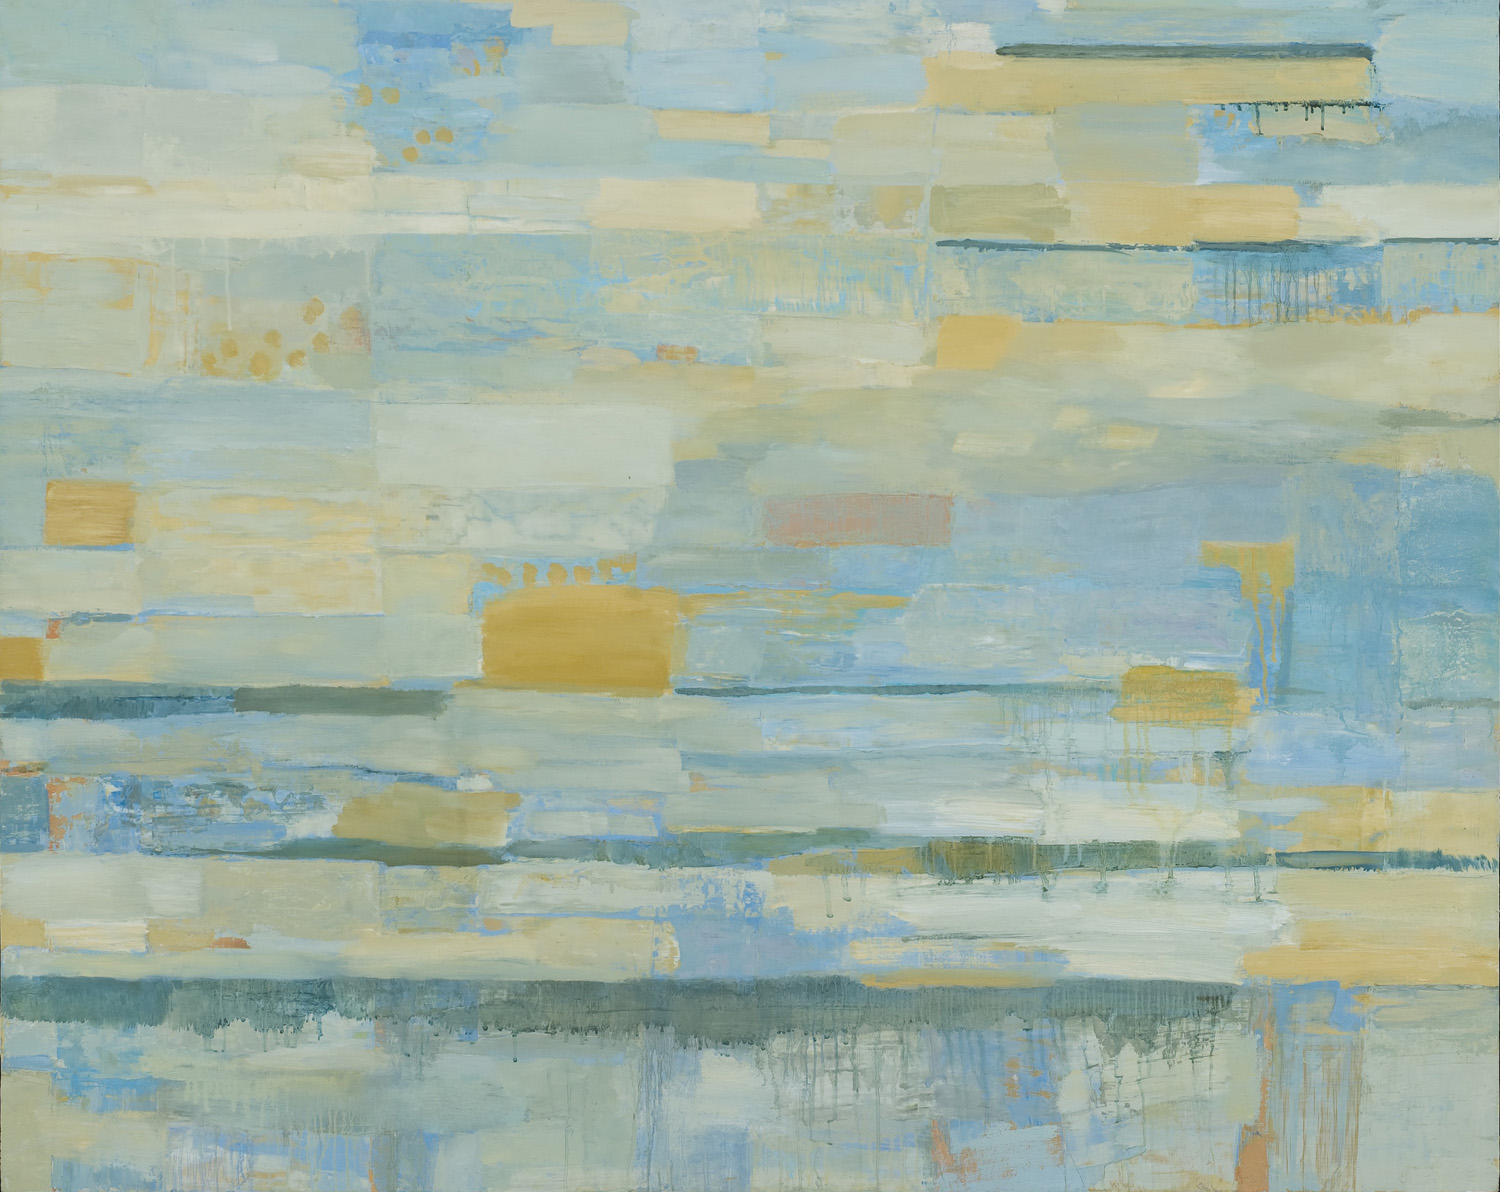 DECEMBER • oil on wood • 44 by 52 inches • 2008